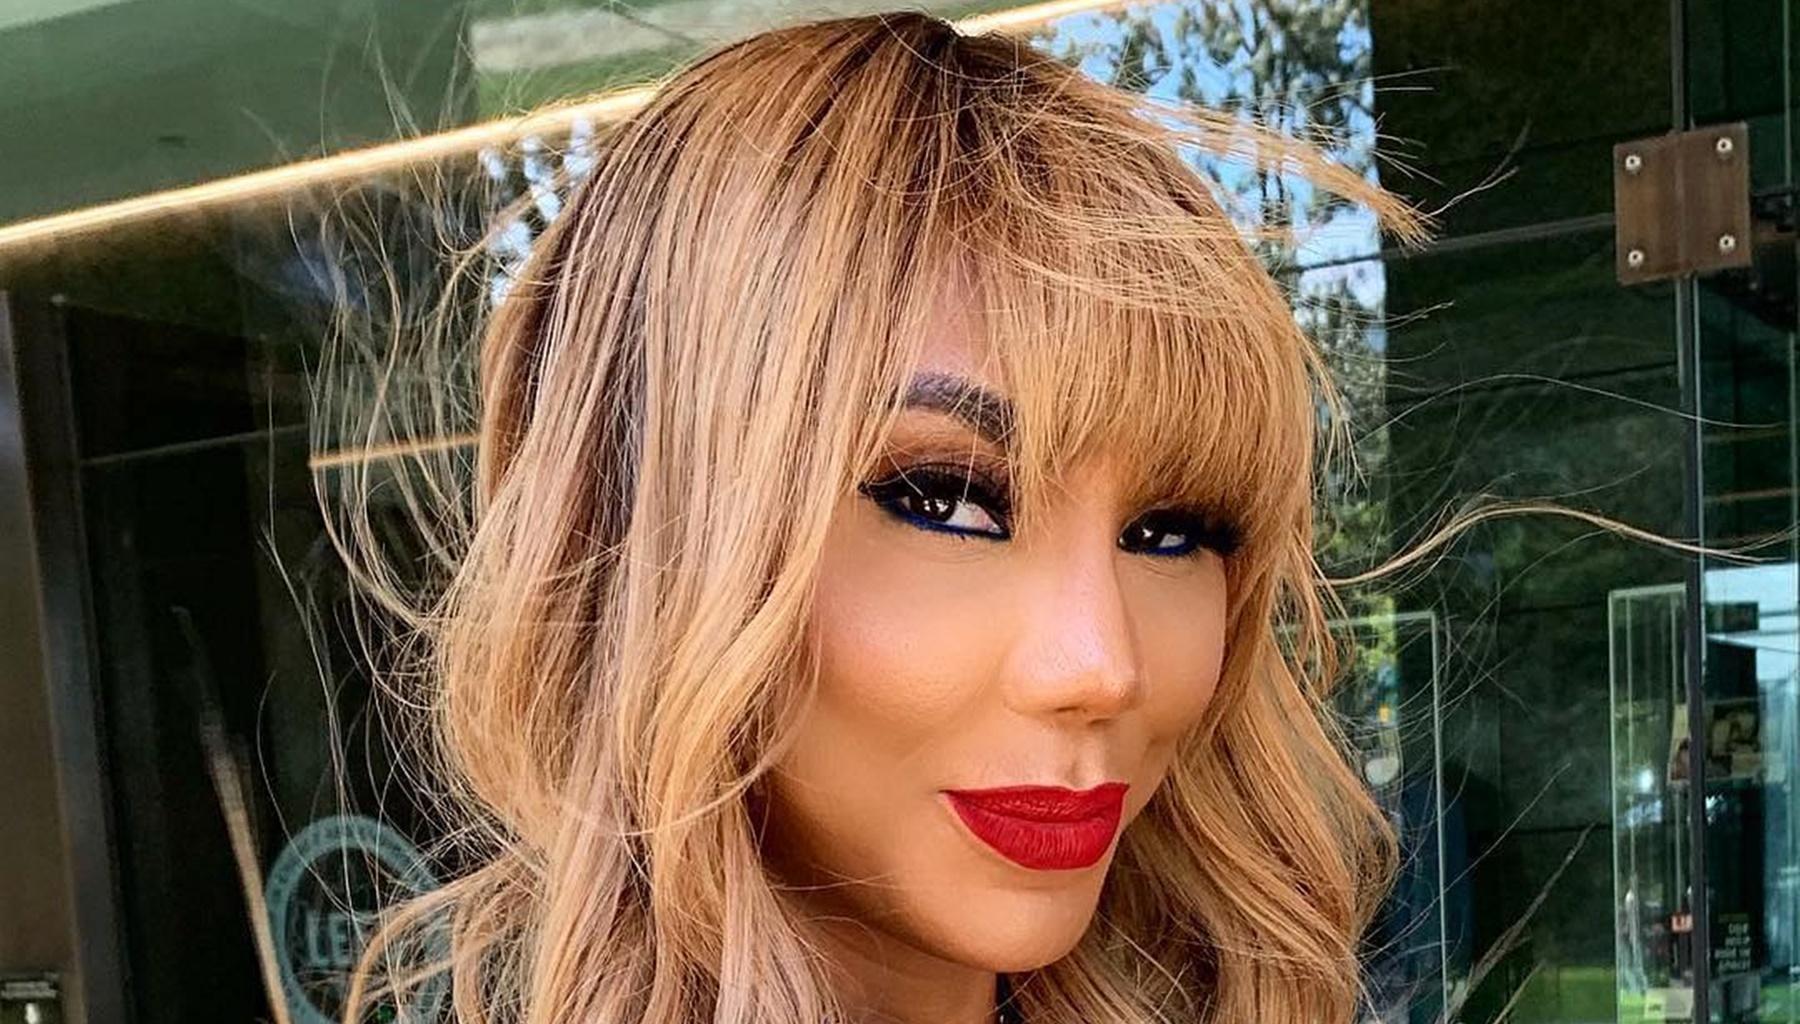 Tamar Braxton's BF, David Adefeso Addresses The Trip To Nigeria For His Mother's Birthday Party - Check Out The New Pics & Videos